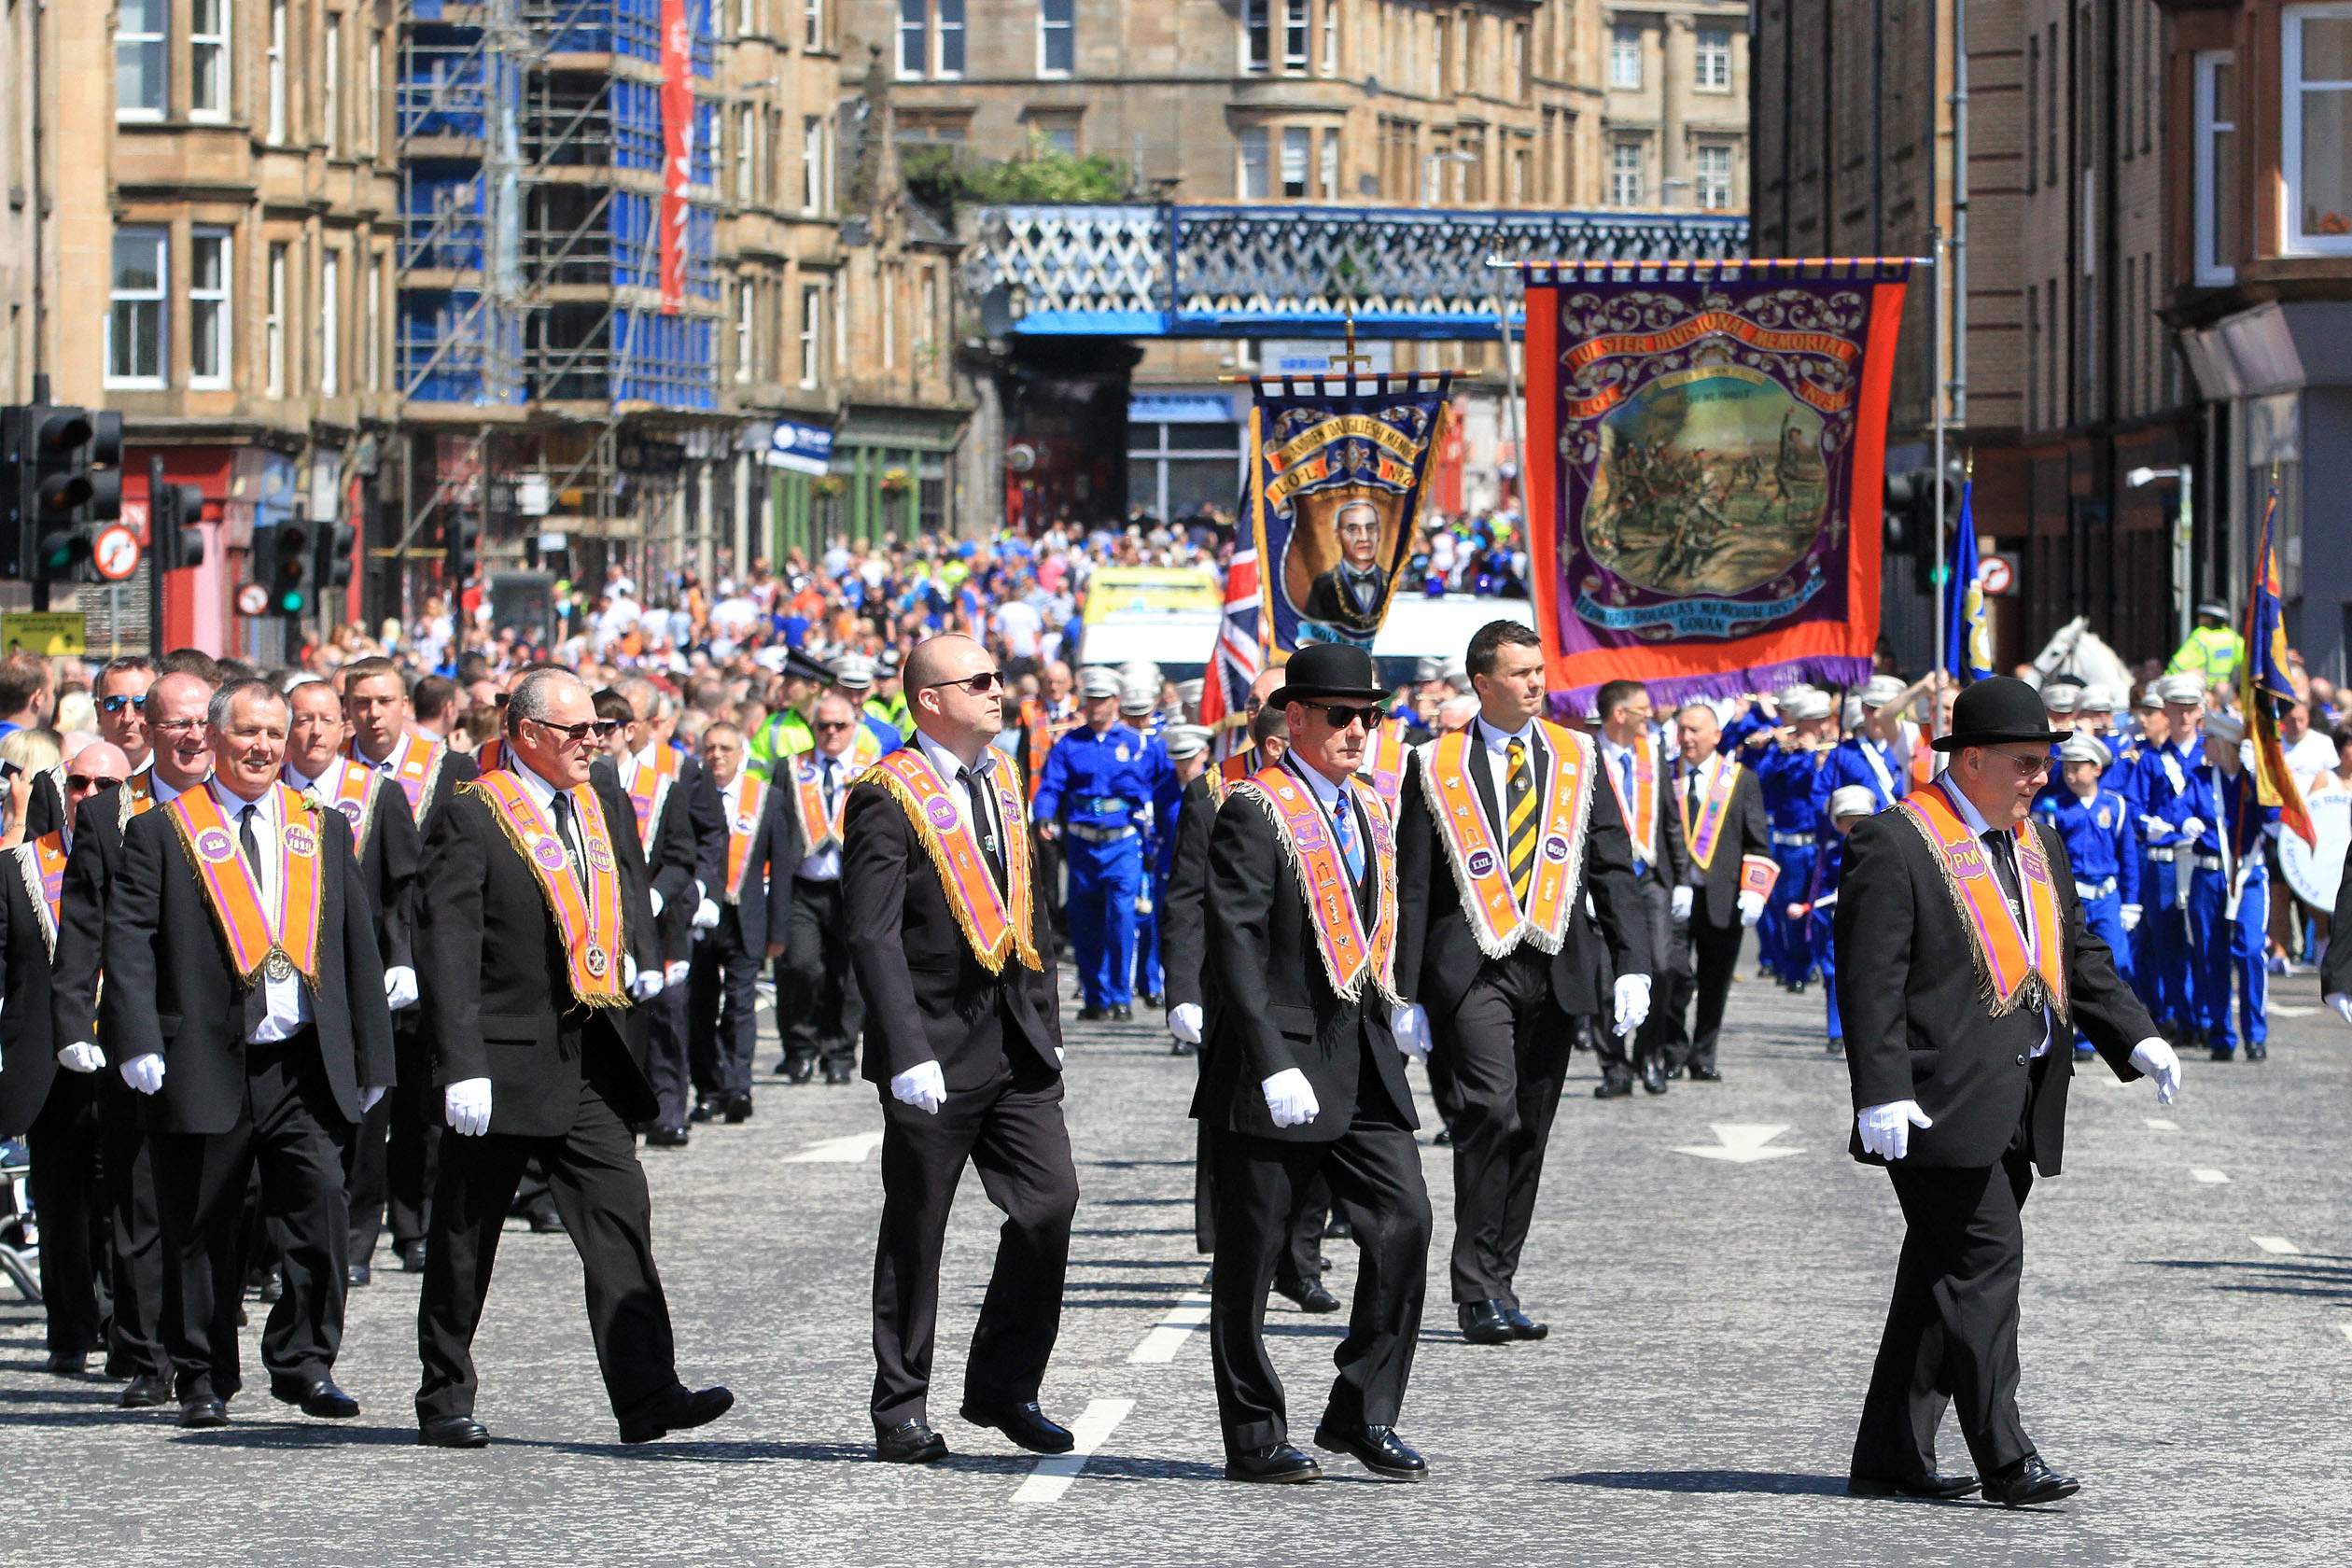 An Orange Order march in Glasgow (Barrie Marshall / DC Thomson)